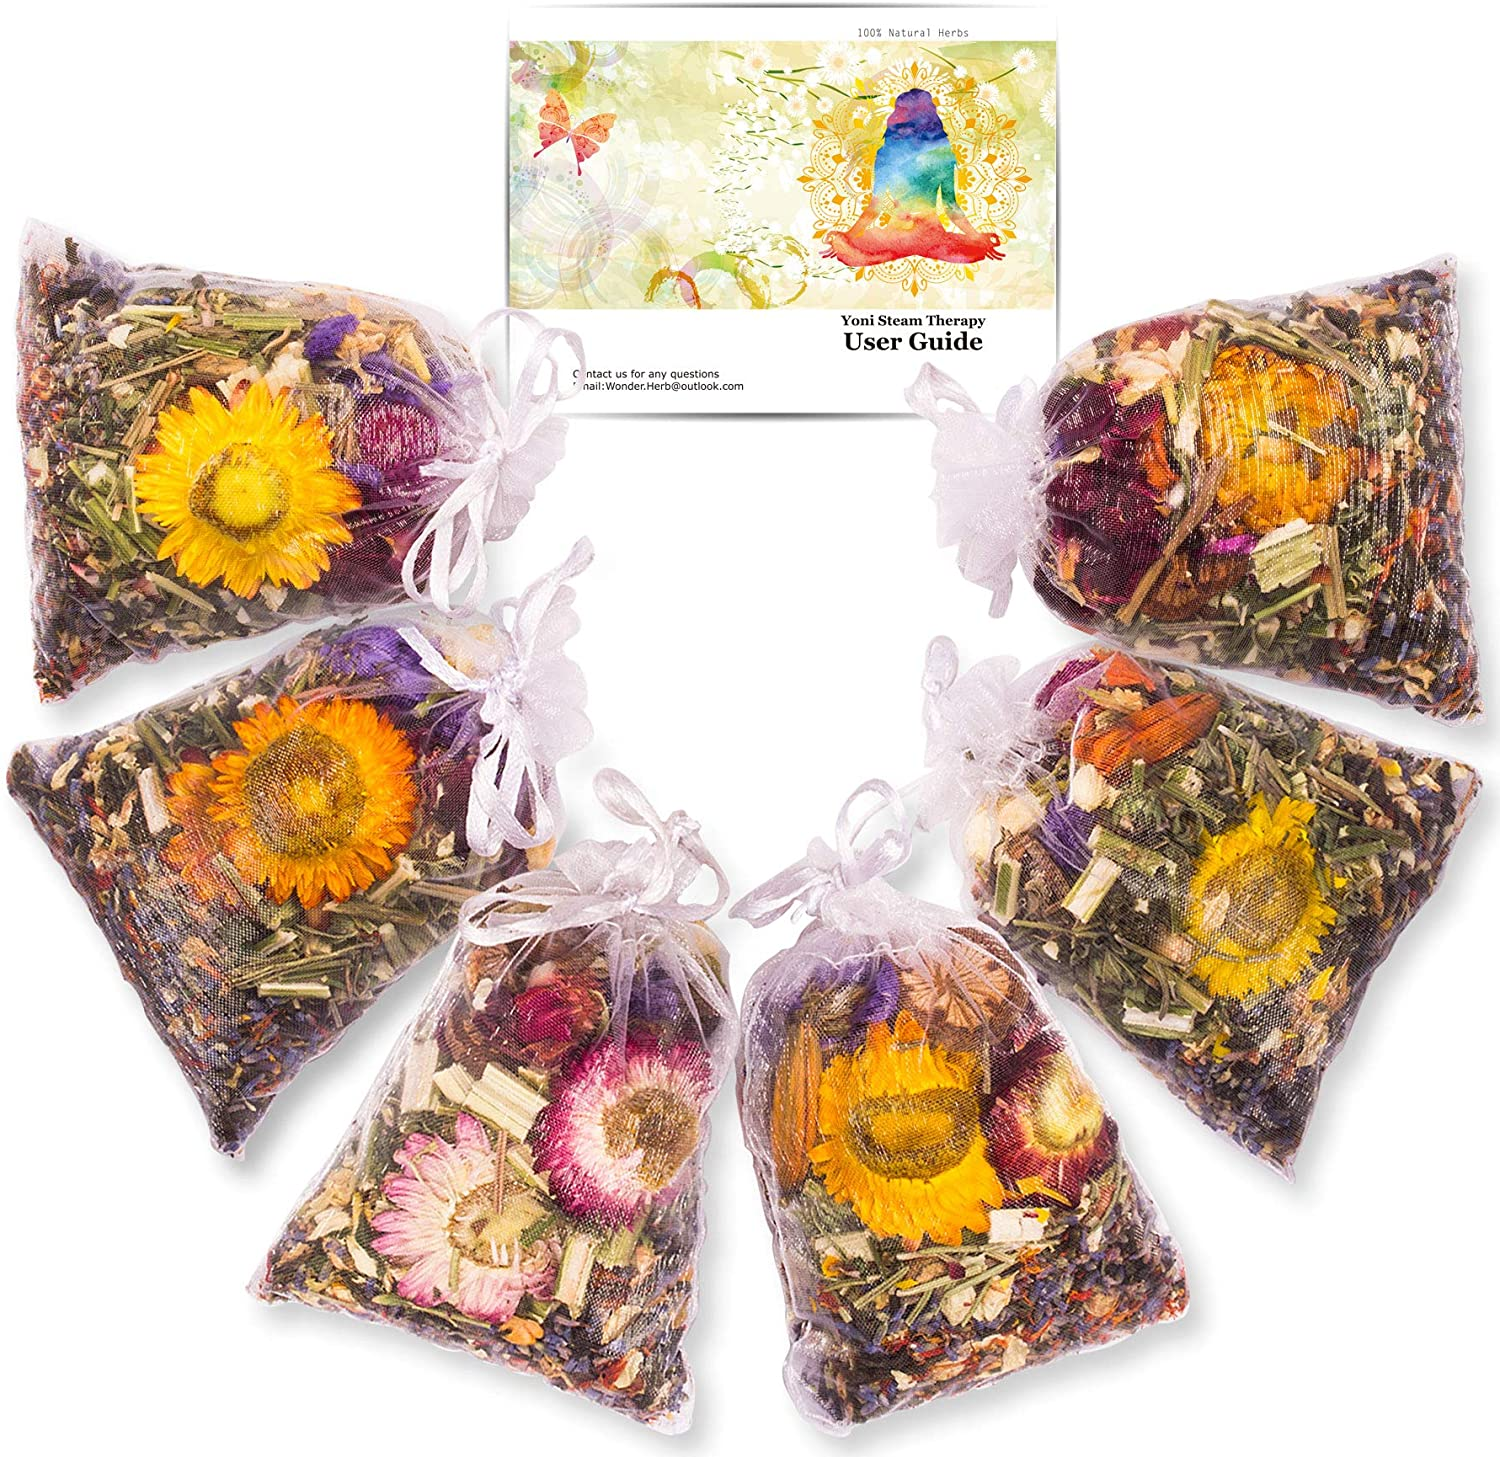 Yoni Steam Herbs for Cleansing Natural (6 oz), V Steam Herbs Detox Kit for Women, Do It Yourself Yoni Herbs for Steaming, Herbal Bath Steaming for Tightening and Fertility, Vaginal Steam Bath Home